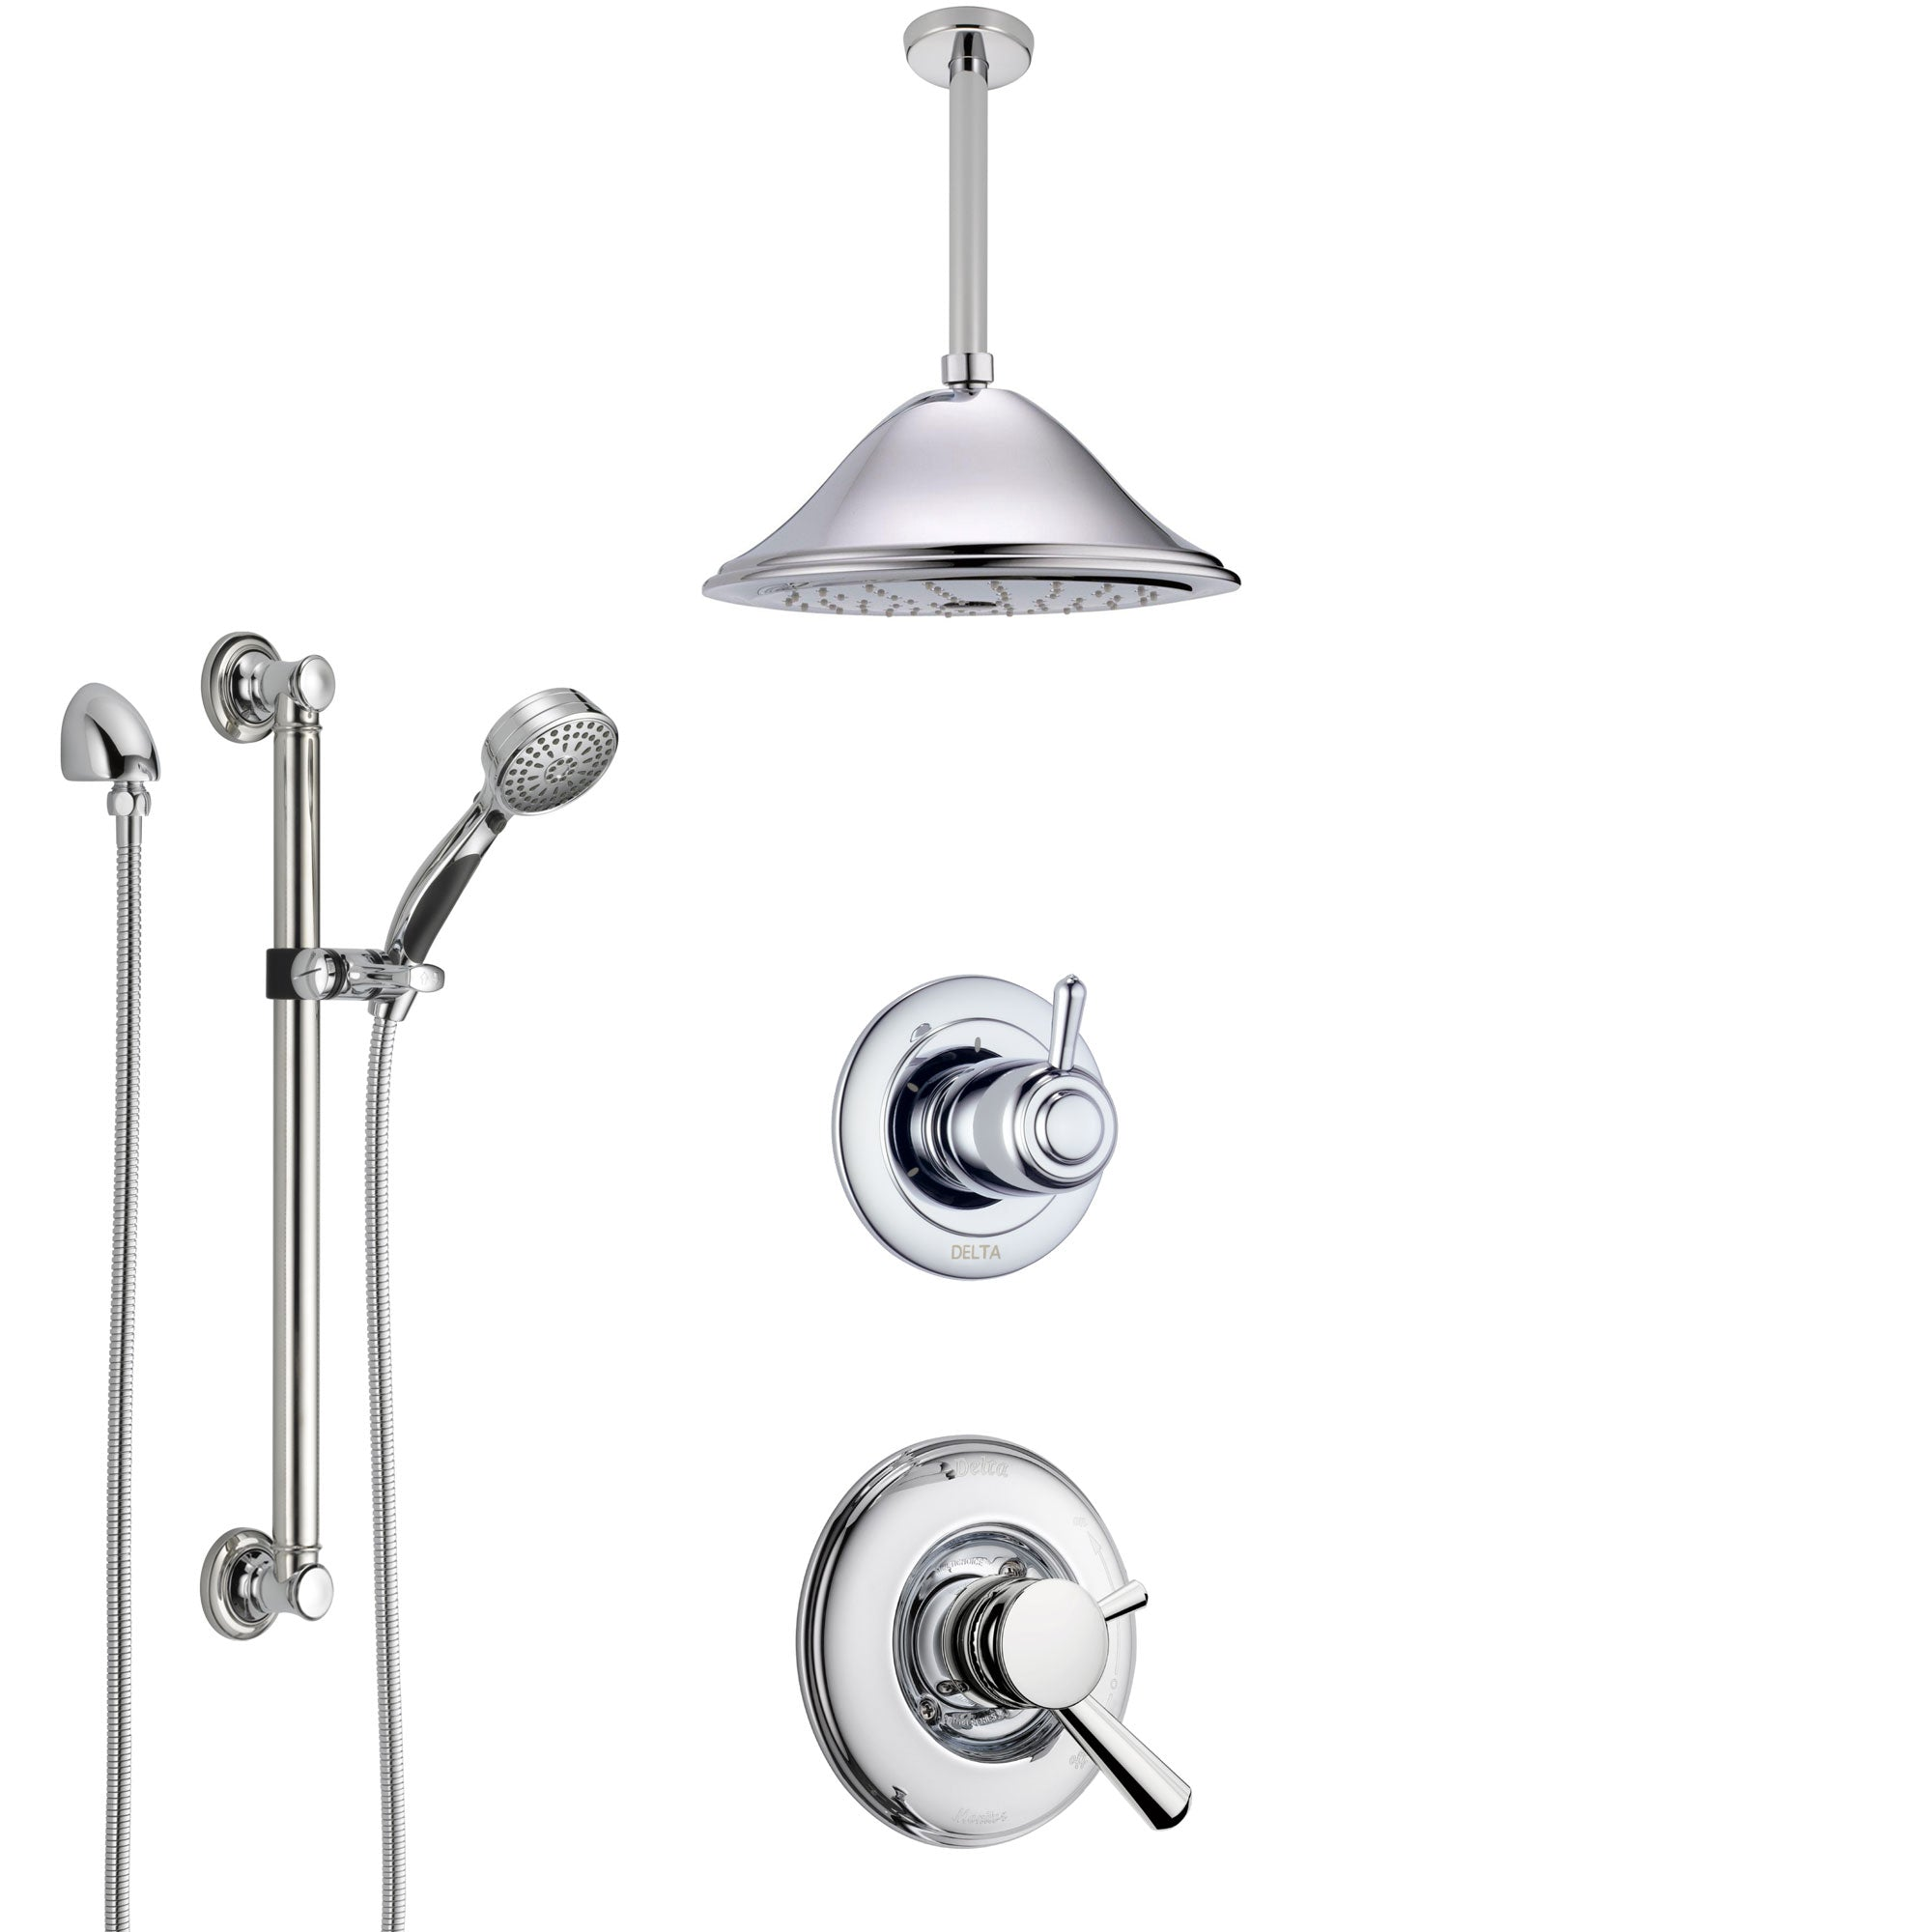 Delta Linden Chrome Finish Shower System with Dual Control Handle, 3-Setting Diverter, Ceiling Mount Showerhead, and Hand Shower with Grab Bar SS17932